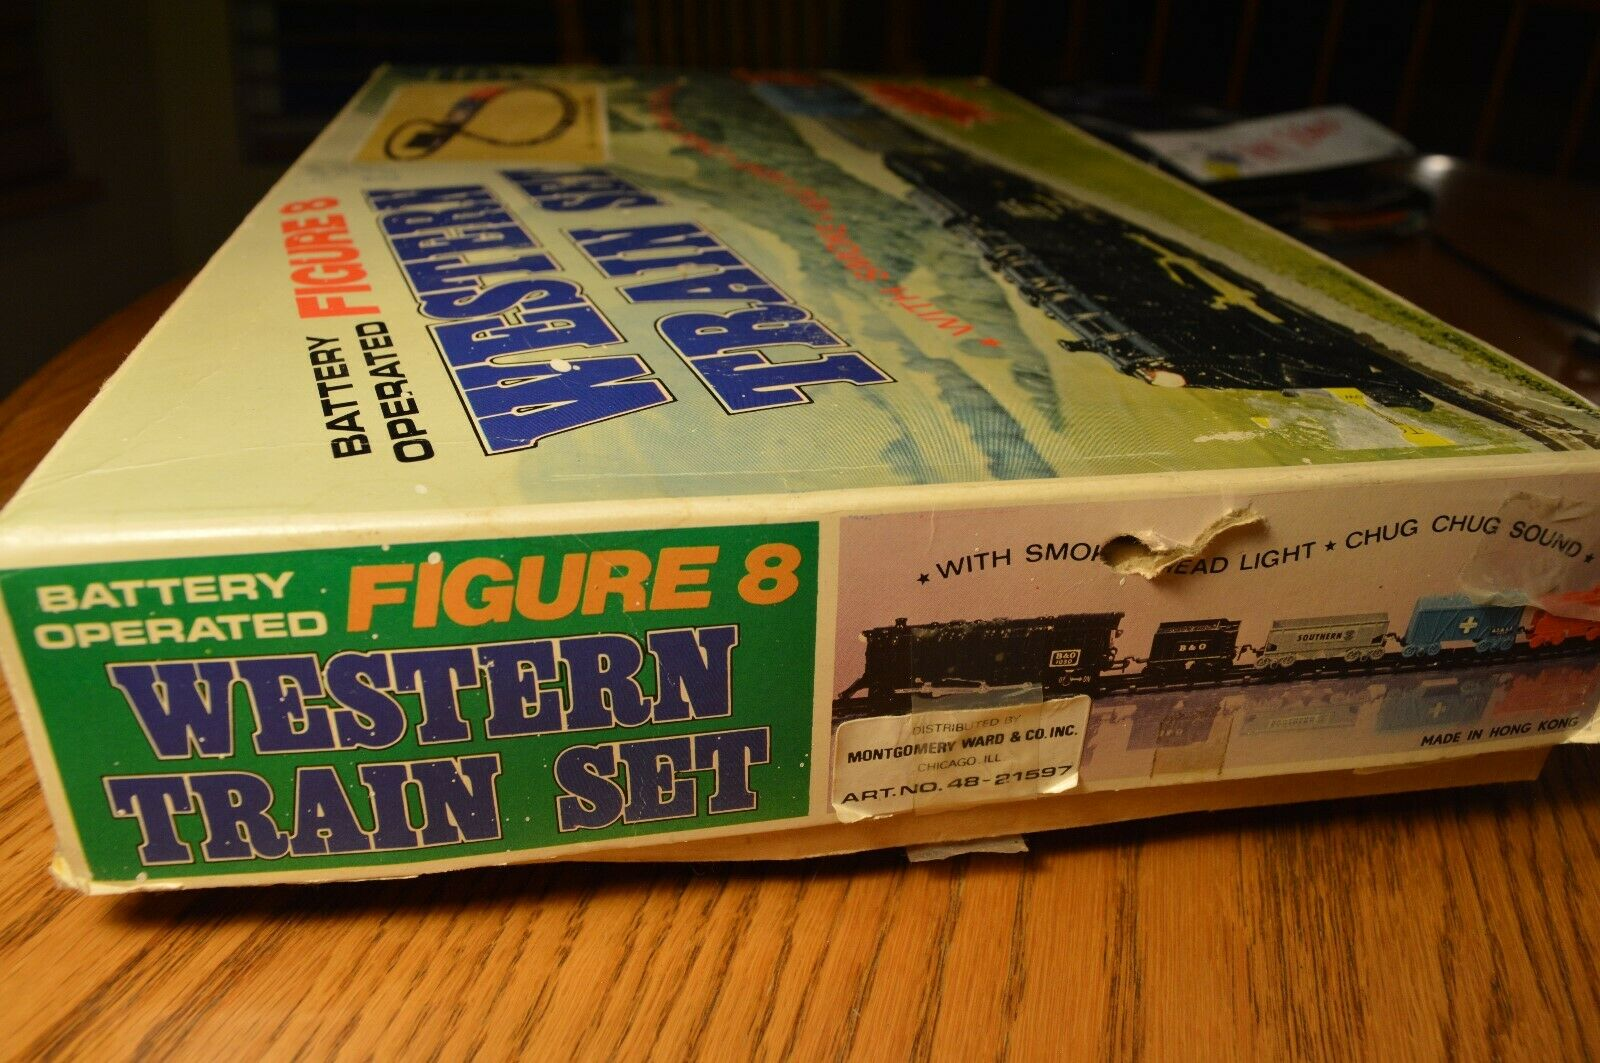 Vintage Battery Operated Western Train Set